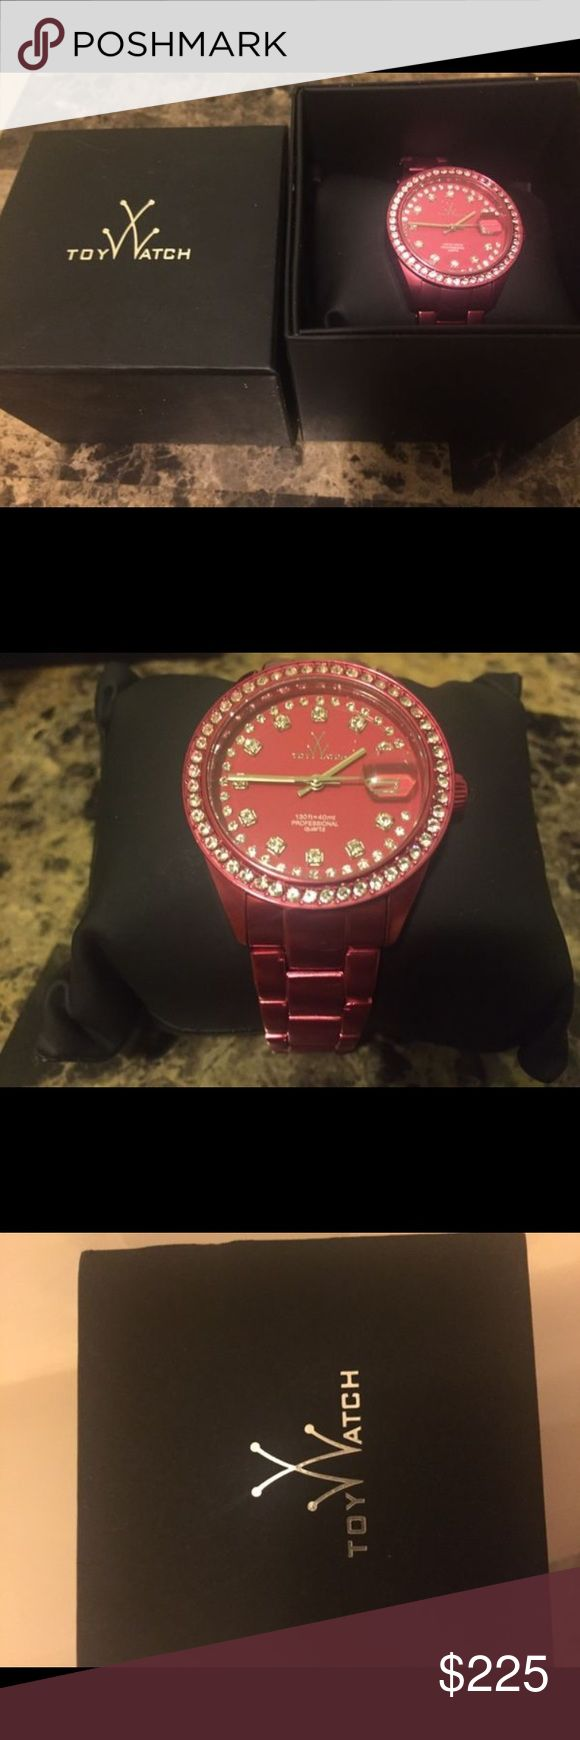 Pink ToyWatch Hot Pink ToyWatch. Brand new. Never worn. Perfect condition. ToyWatch Accessories Watches